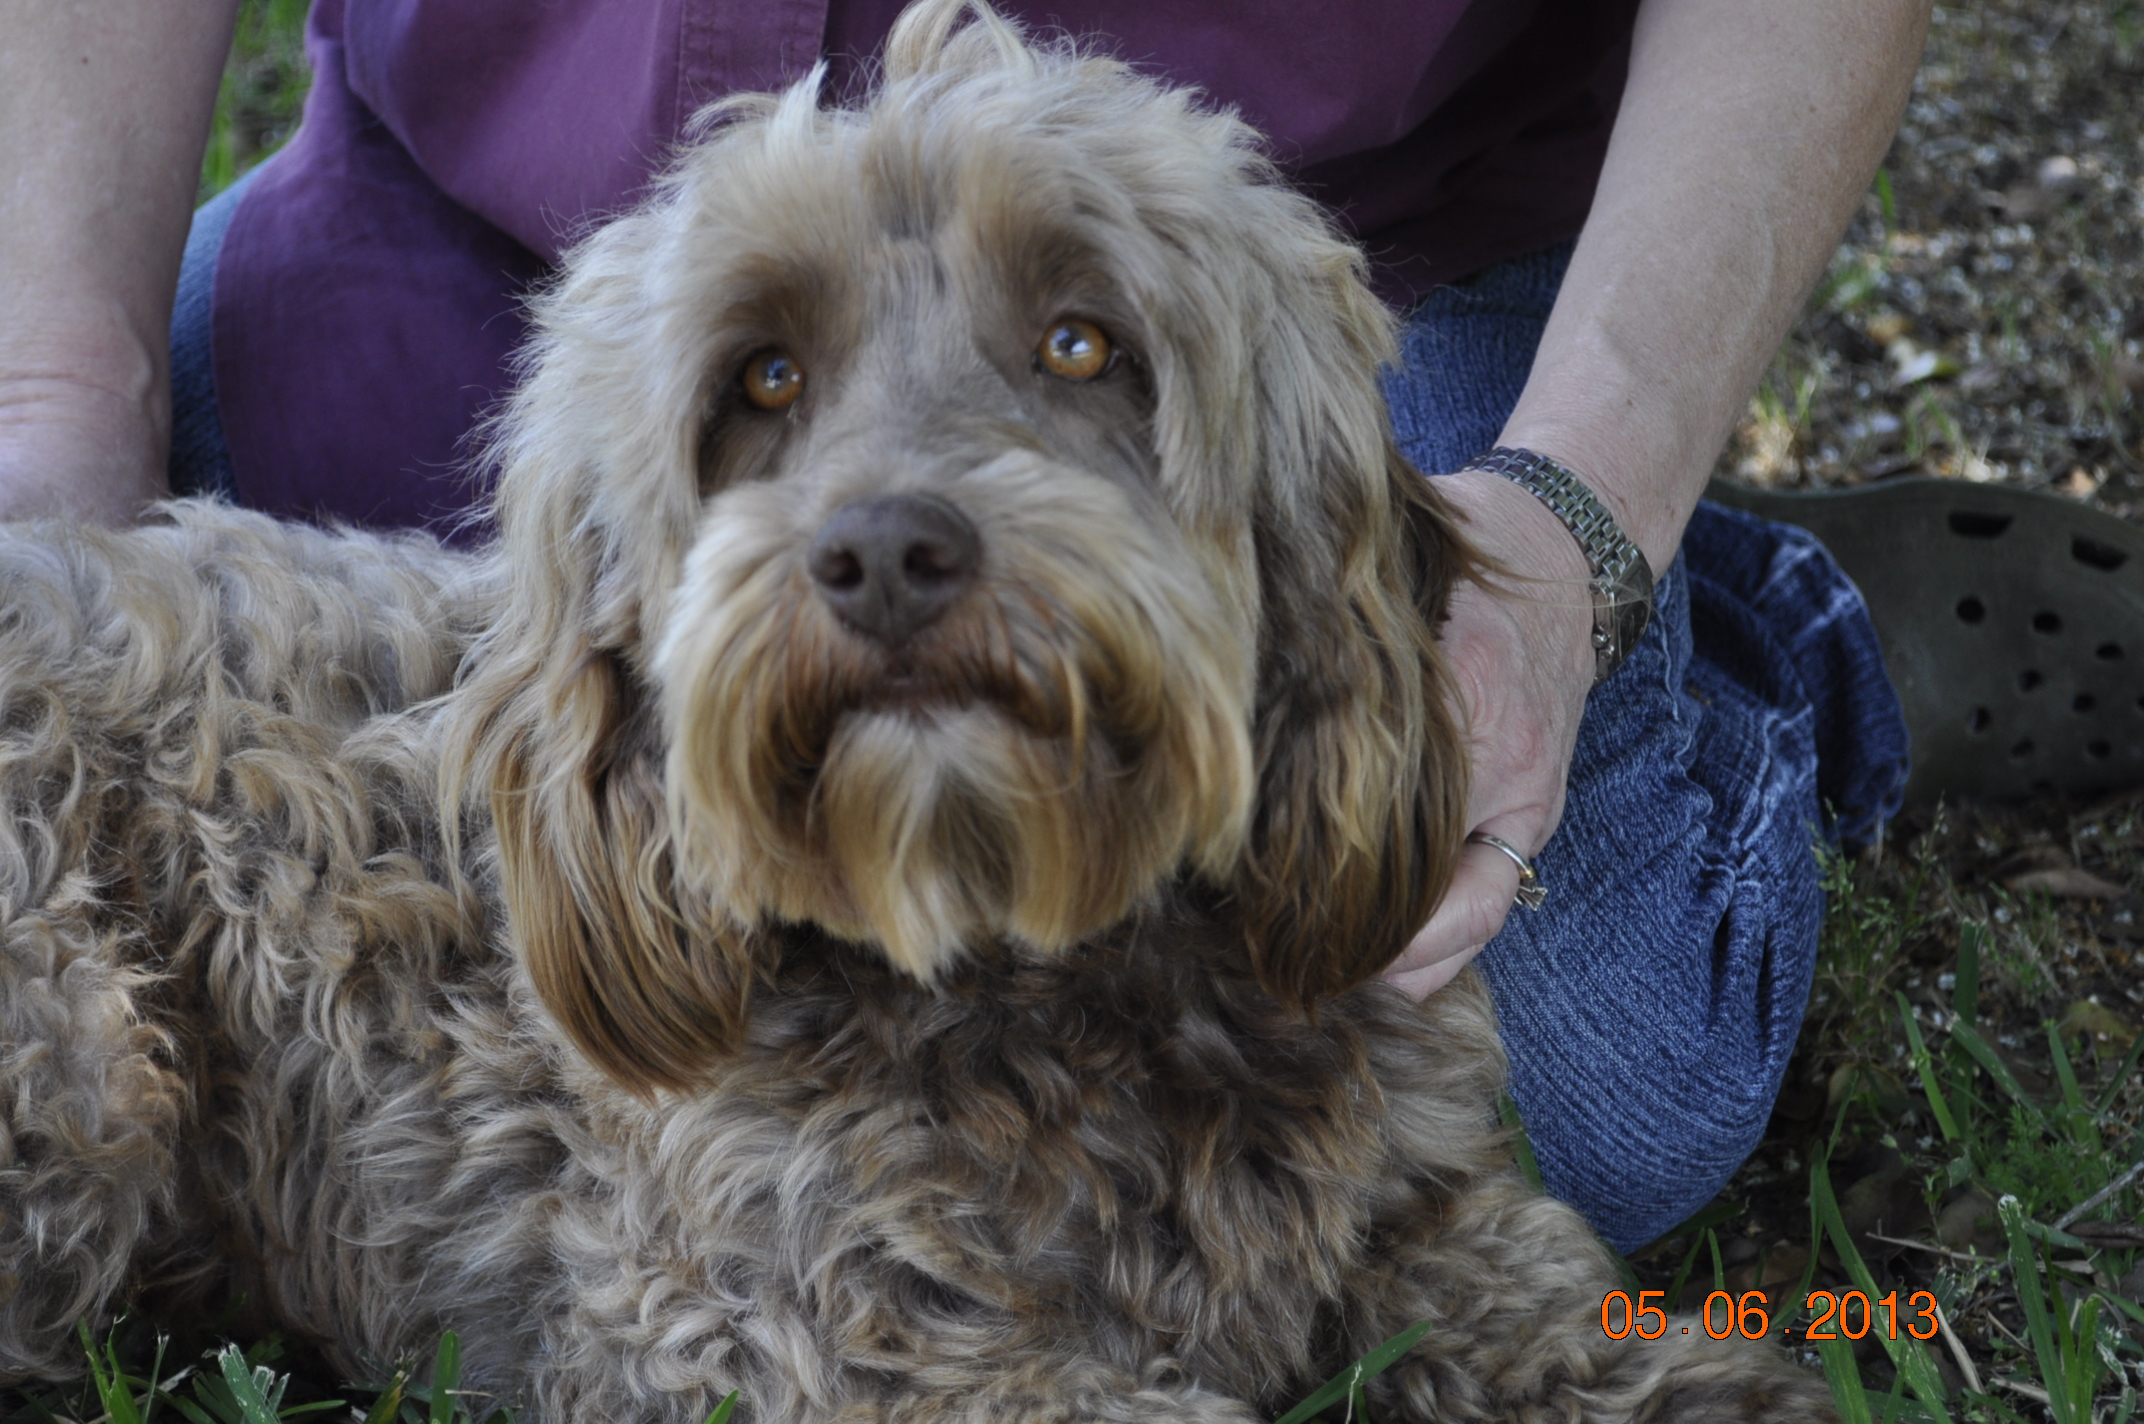 JUST LABS KENNELS - Home of Labs and Labradoodles of Southeast Texas